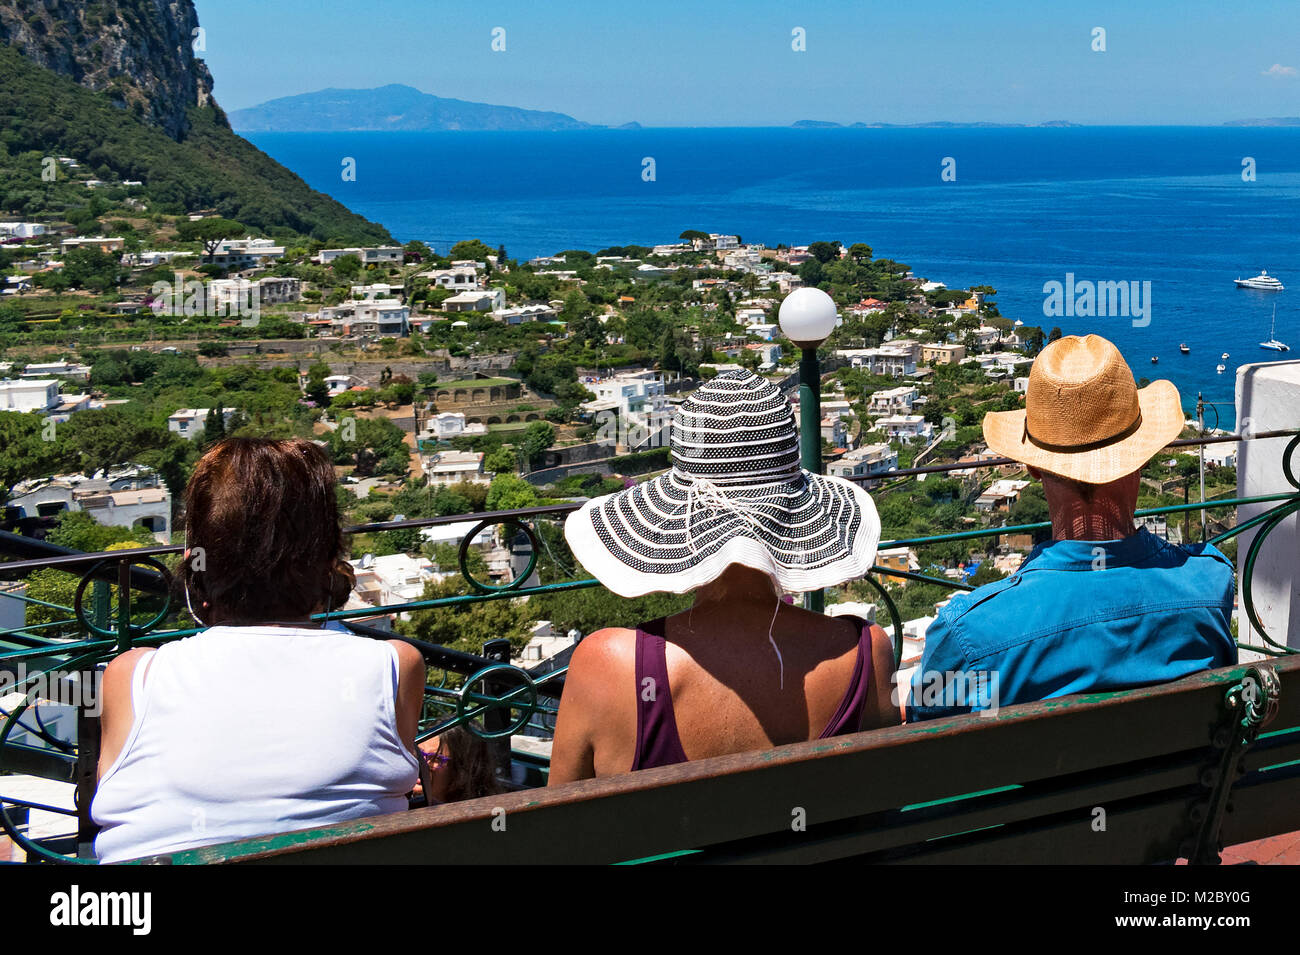 visitors looking out to the bay of naples from the island of capri, italy, - Stock Image